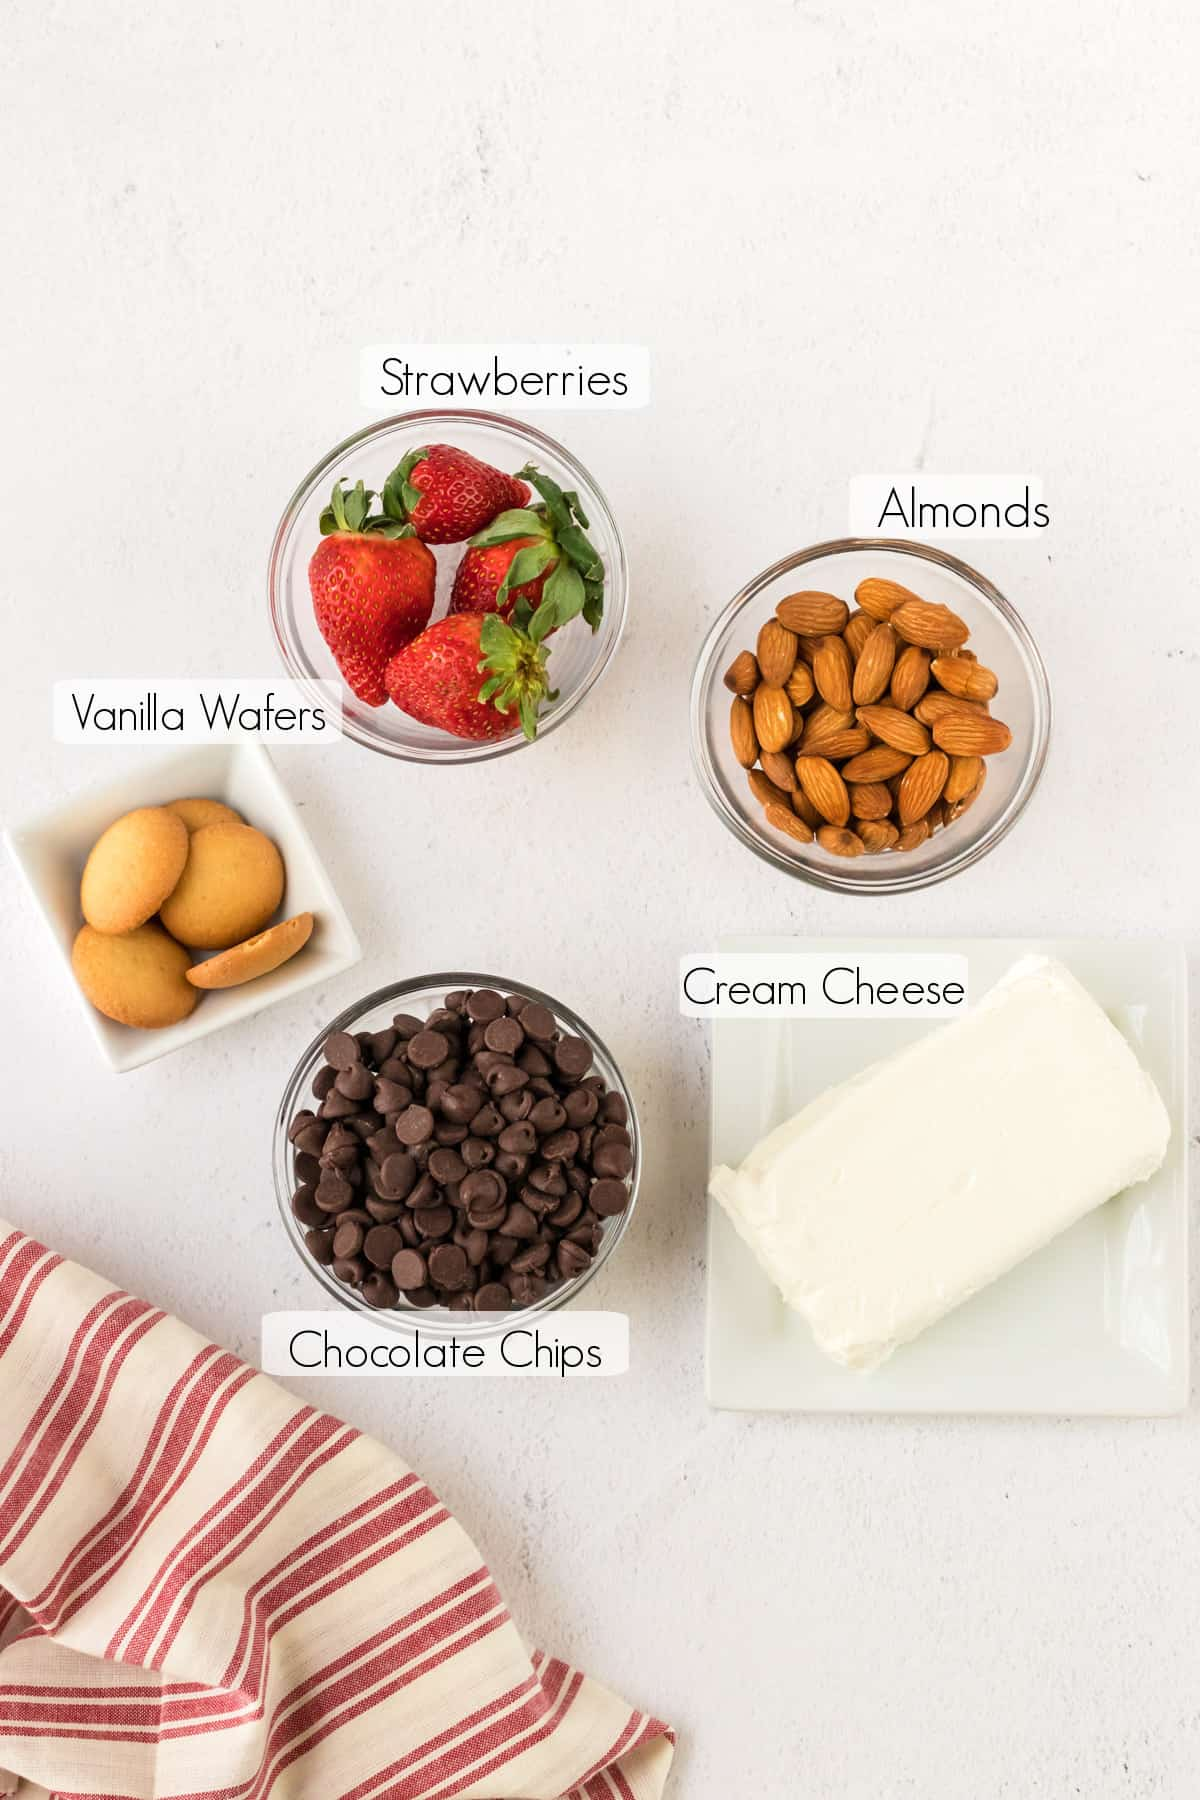 Labeled ingredients to make Strawberry Chocolate Cheesecake Bites with red and white linen in lower left corner.